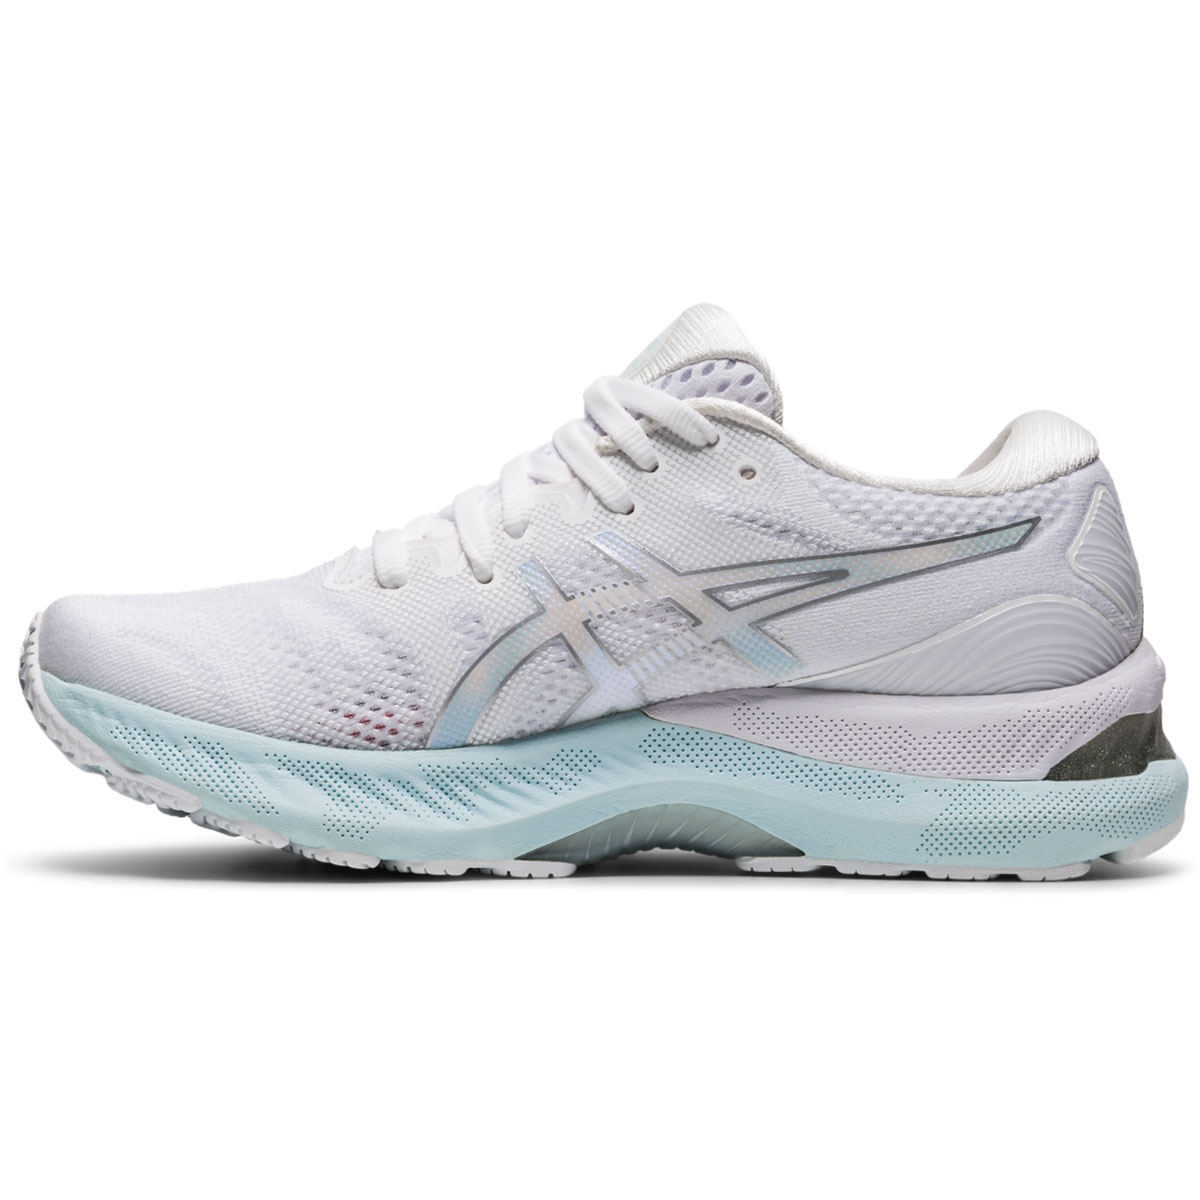 Women's Asics Gel-Nimbus 23 Running Shoe - Color: White/Pure Silver - Size: 5 - Width: Regular, White/Pure Silver, large, image 2